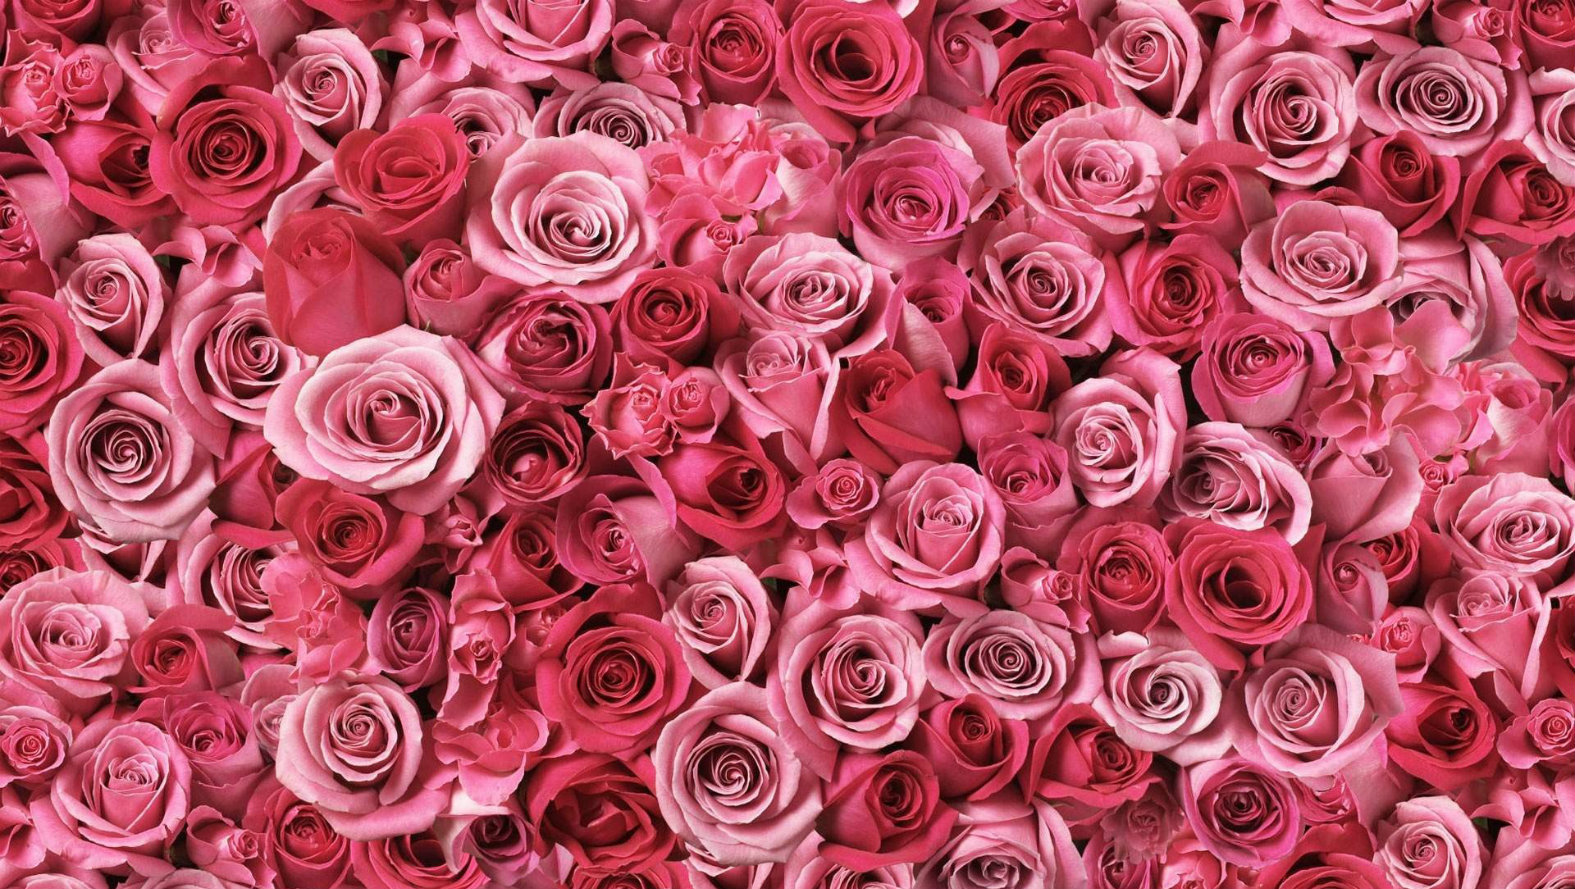 pink-and-roses.jpg